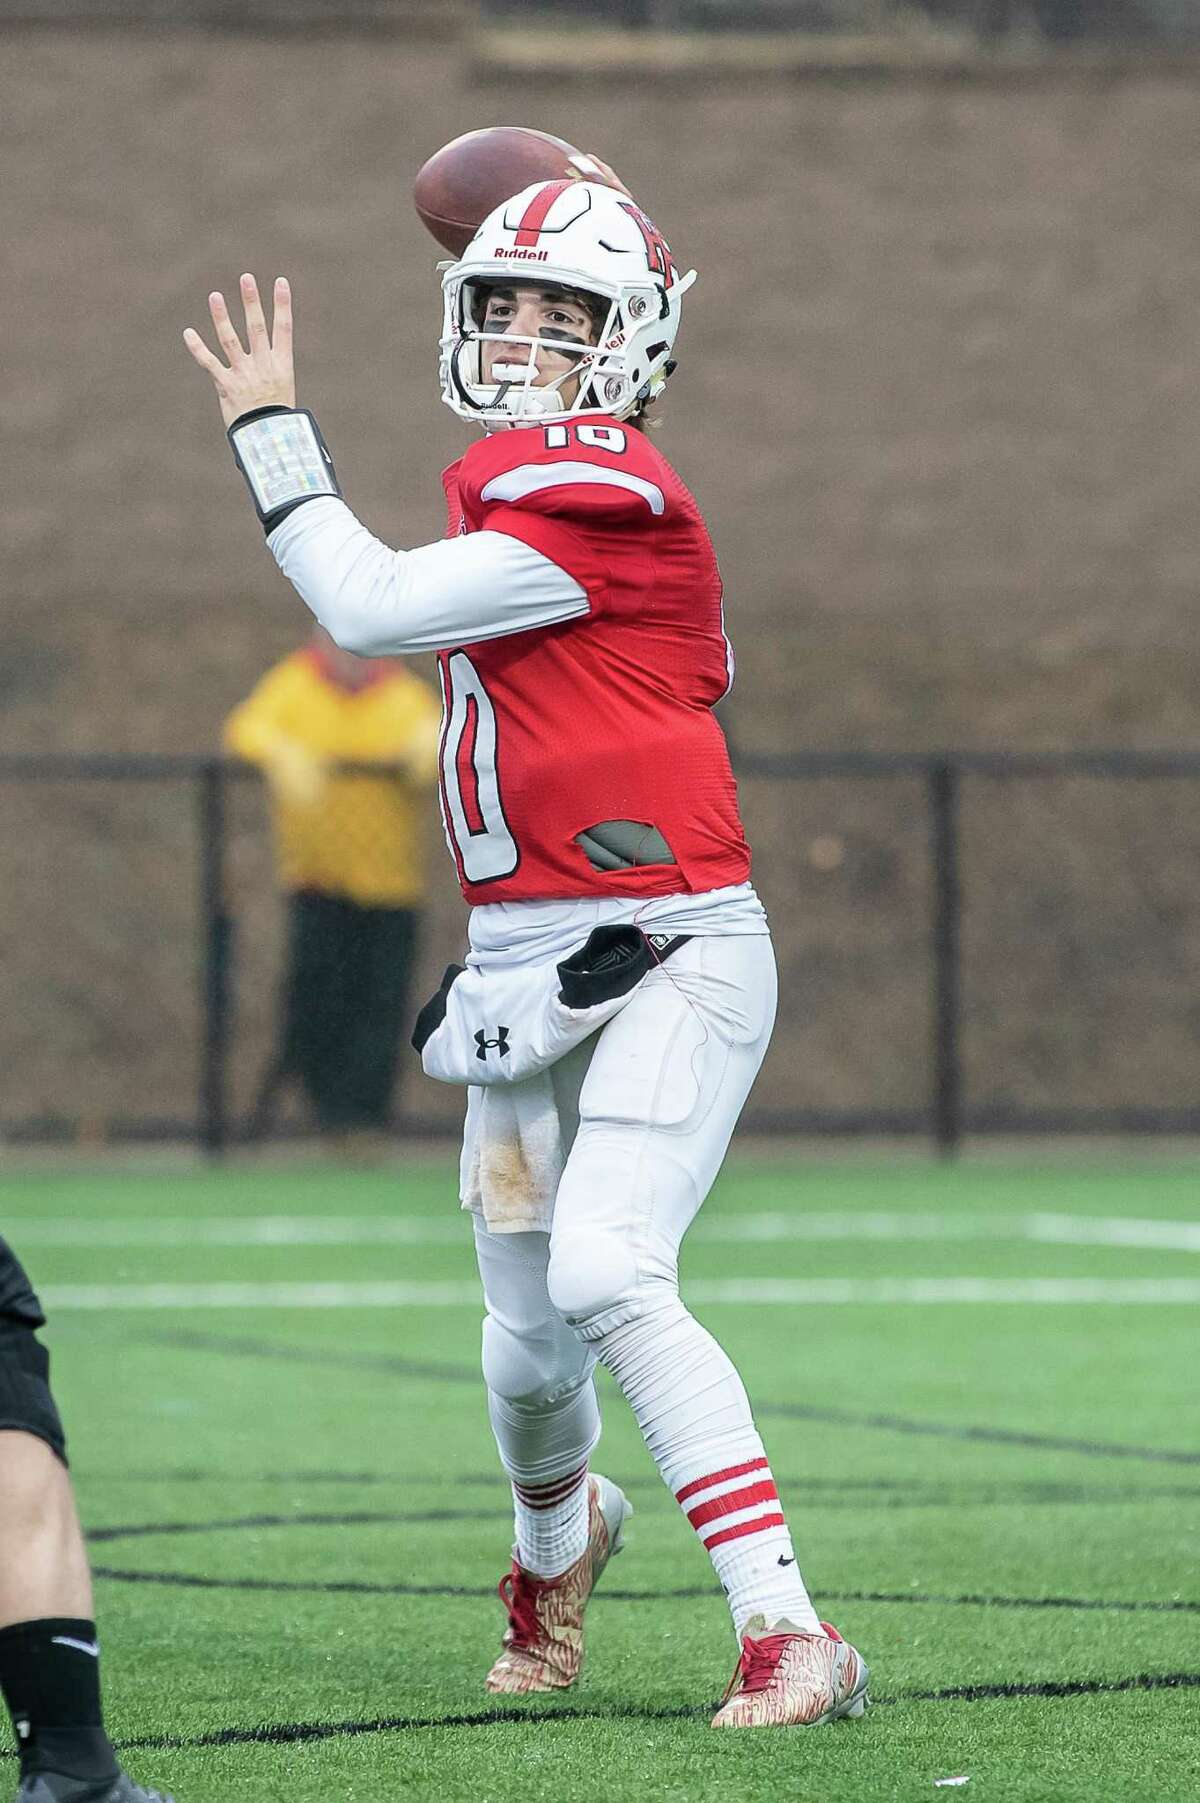 John Iaropoli (10) of Fairfield Prep delivers a pass during a football game between New Canaan and Fairfield Prep on December 2, 2018 at Fairfield University in Fairfield, CT.